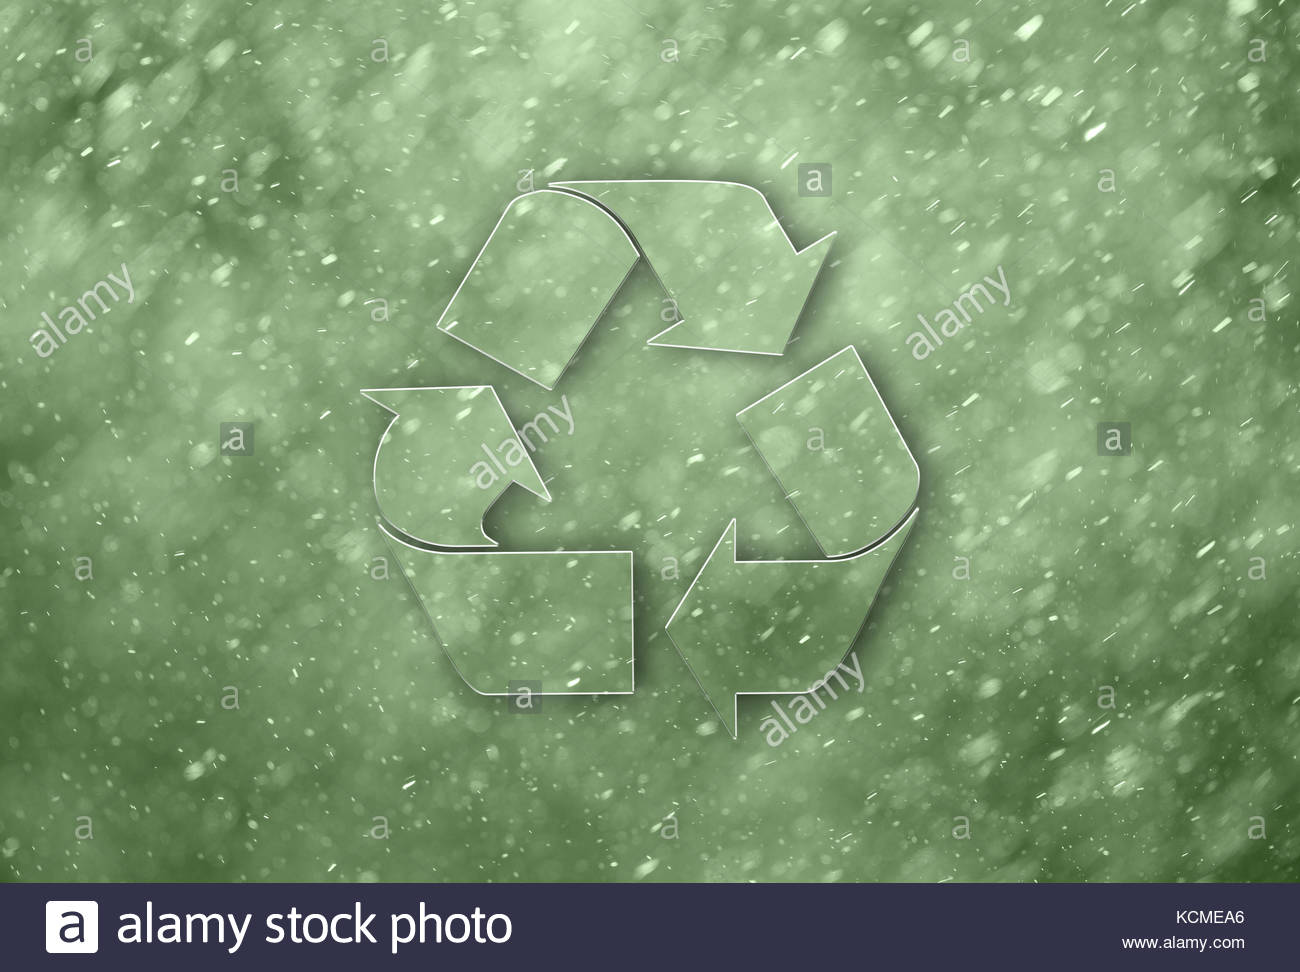 Creative green color recycle symbol on abstract rainy green blurred background. Lovely recycle symbol with blurred - Stock Image